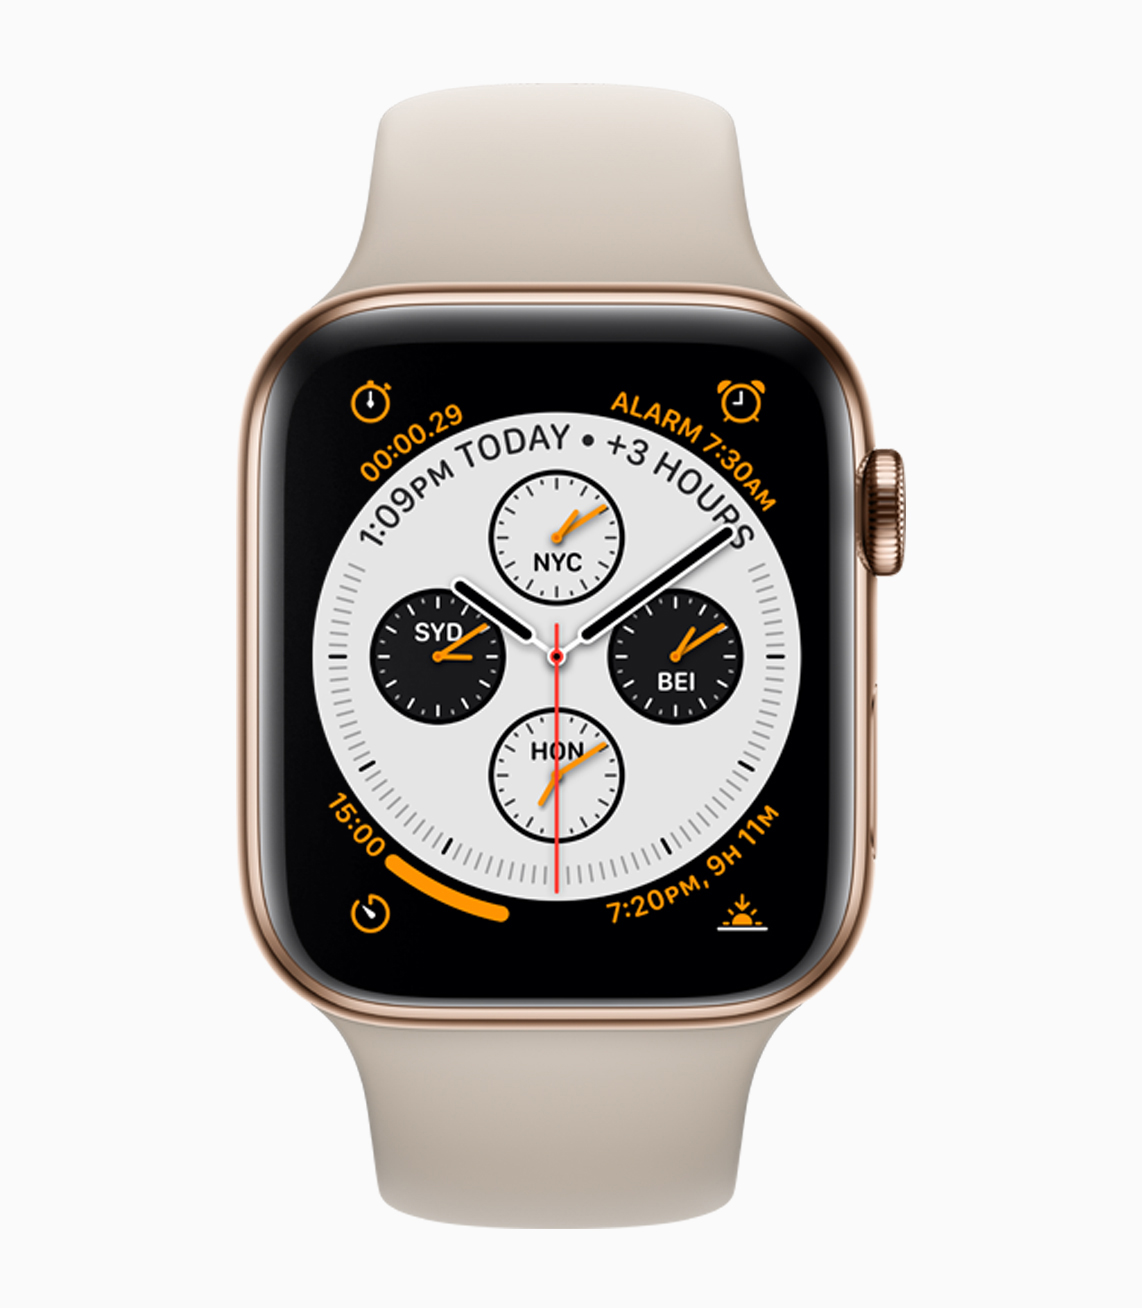 https://www.apple.com/newsroom/images/product/watch/standard/apple-watch-series4_gold-stainless-steel_09122018_carousel.jpg.large_2x.jpg